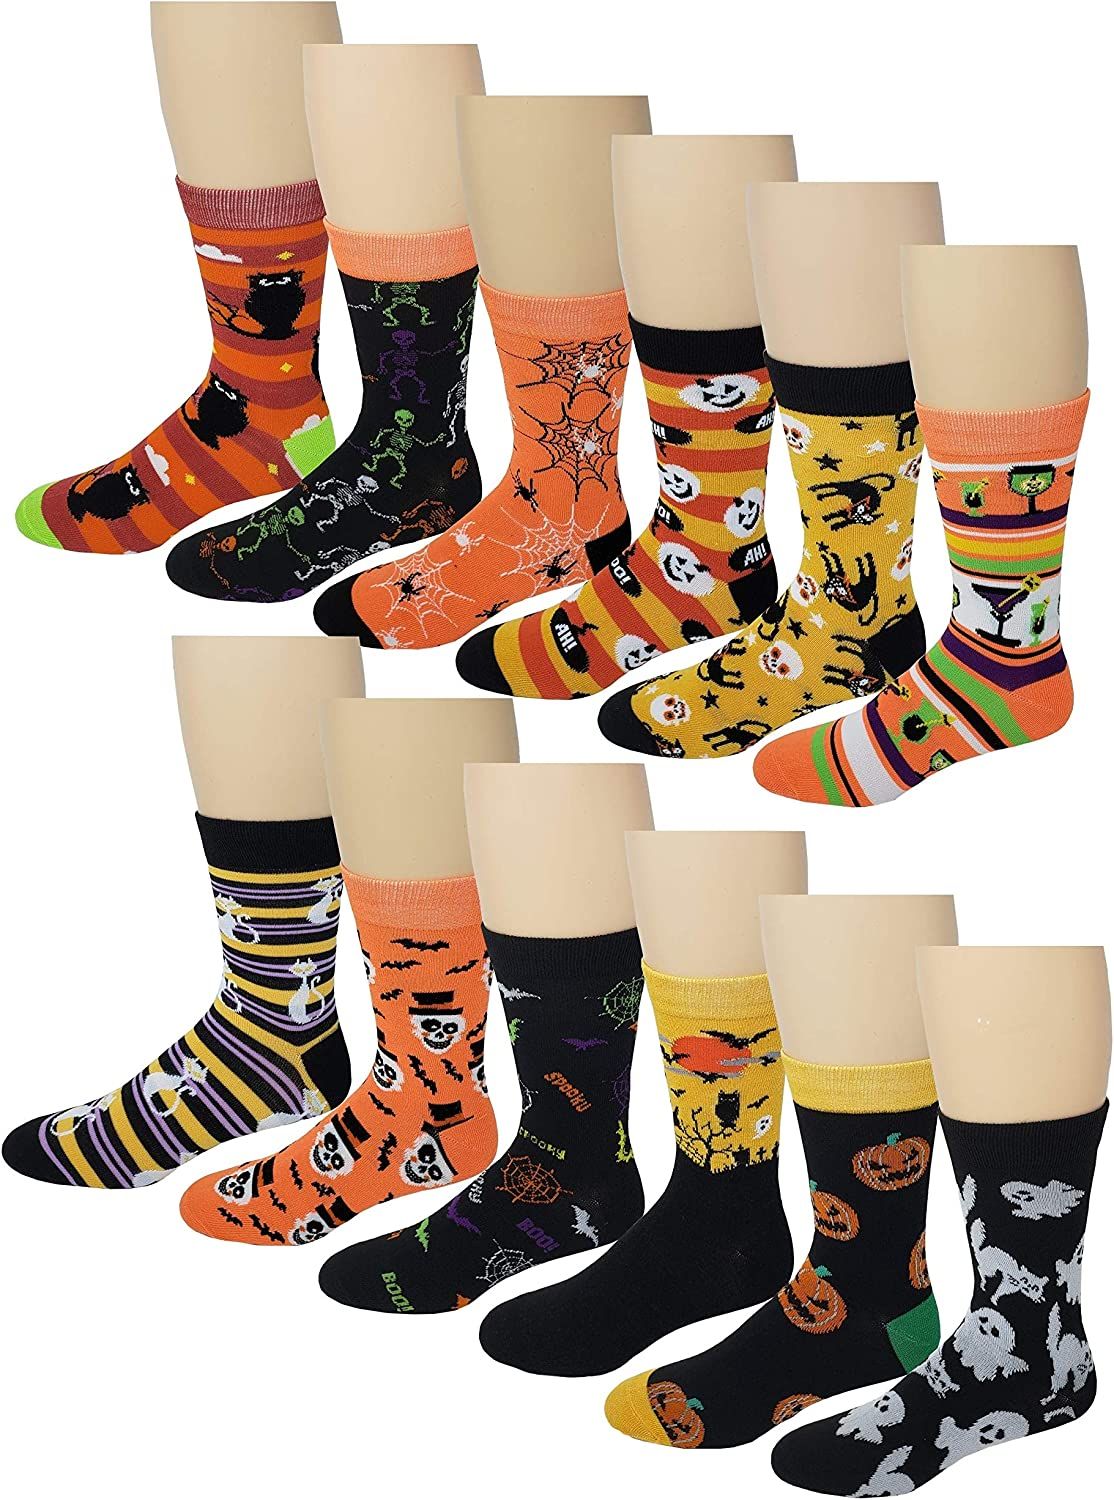 Challenge the lowest price 12 Pairs 6 Men Colorful 10-13 Dress Design Fashion At the price socks